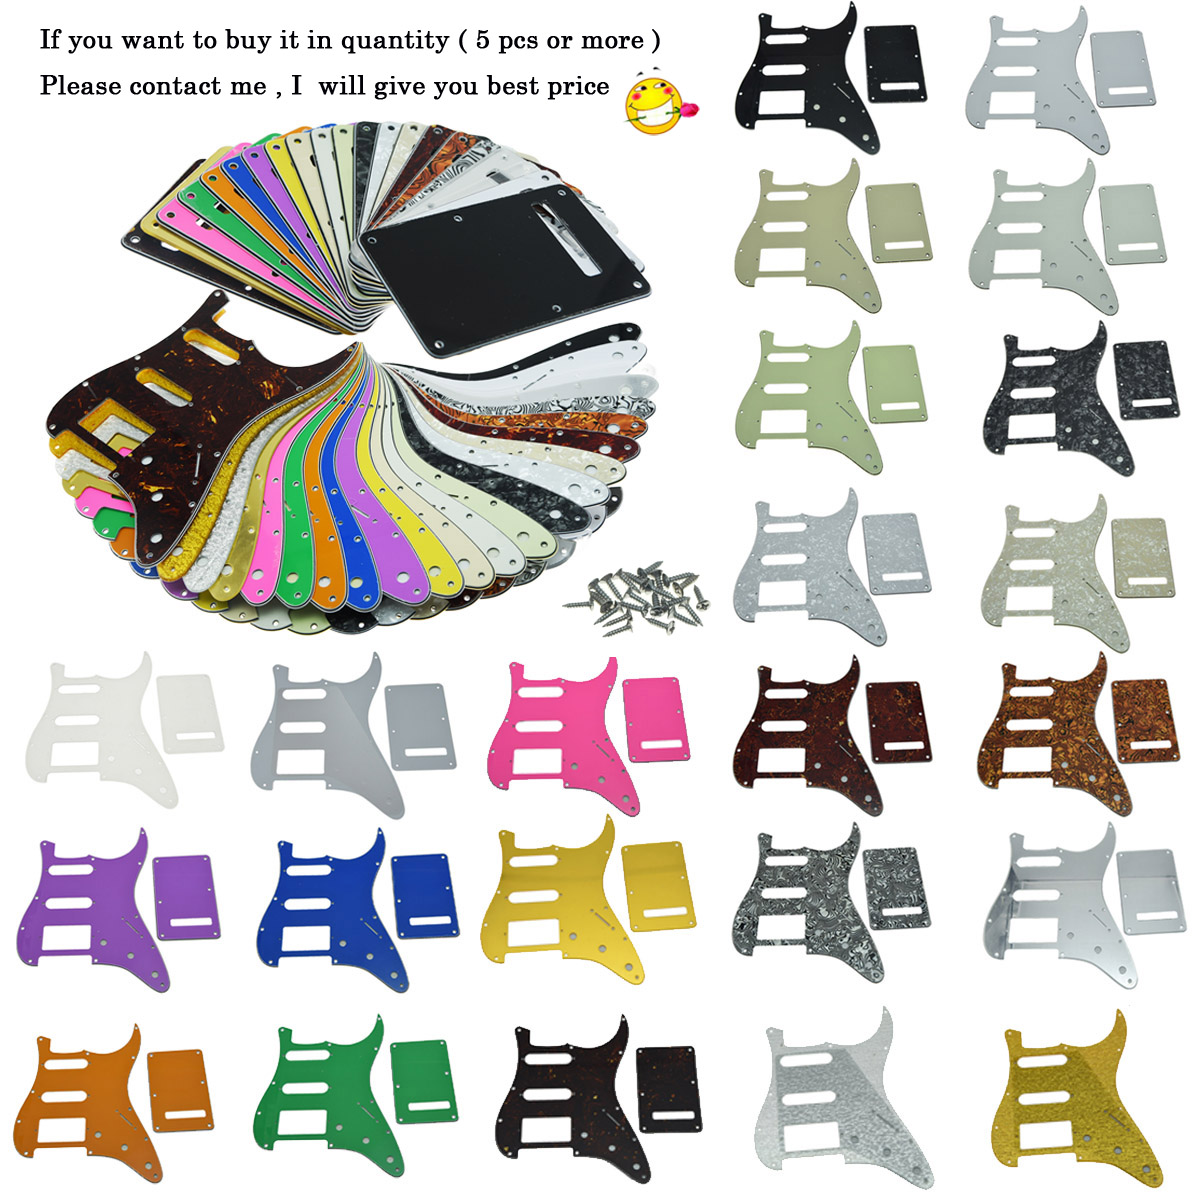 KAISH Various colors ST Style HSS Guitar Pickguard Scratch Plate,Trem Cover, Screws musiclily 3ply pvc outline pickguard for fenderstrat st guitar custom